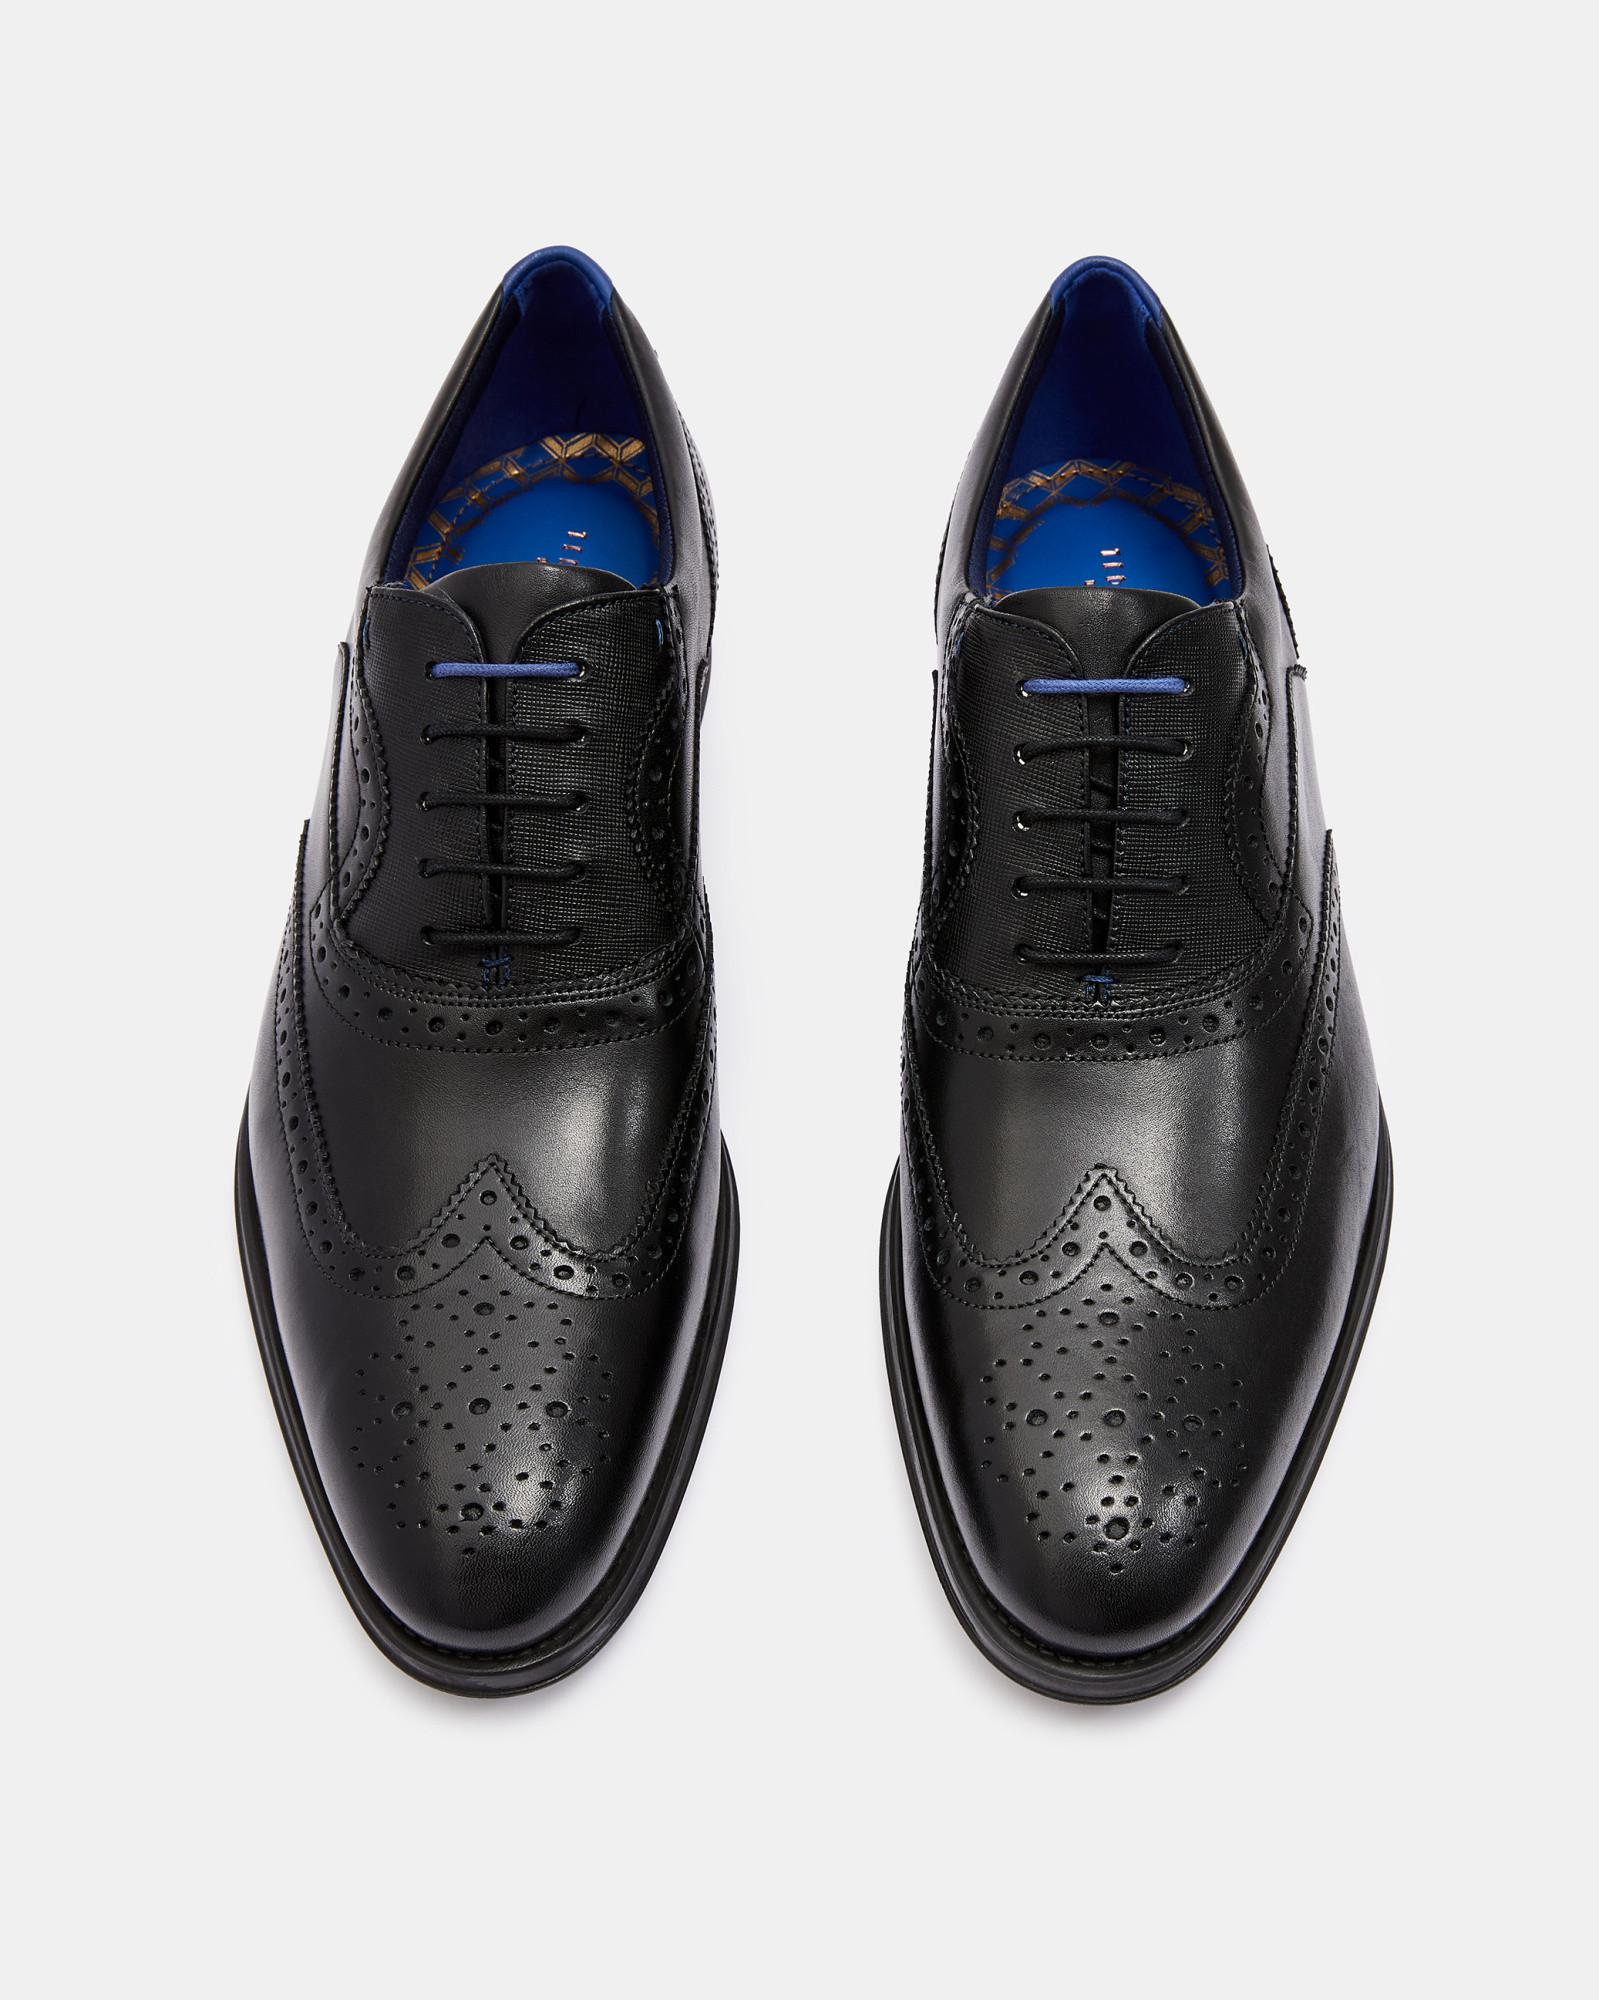 e1b08f2ac22e01 Lyst - Ted Baker Leather Wing Cap Brogues in Black for Men